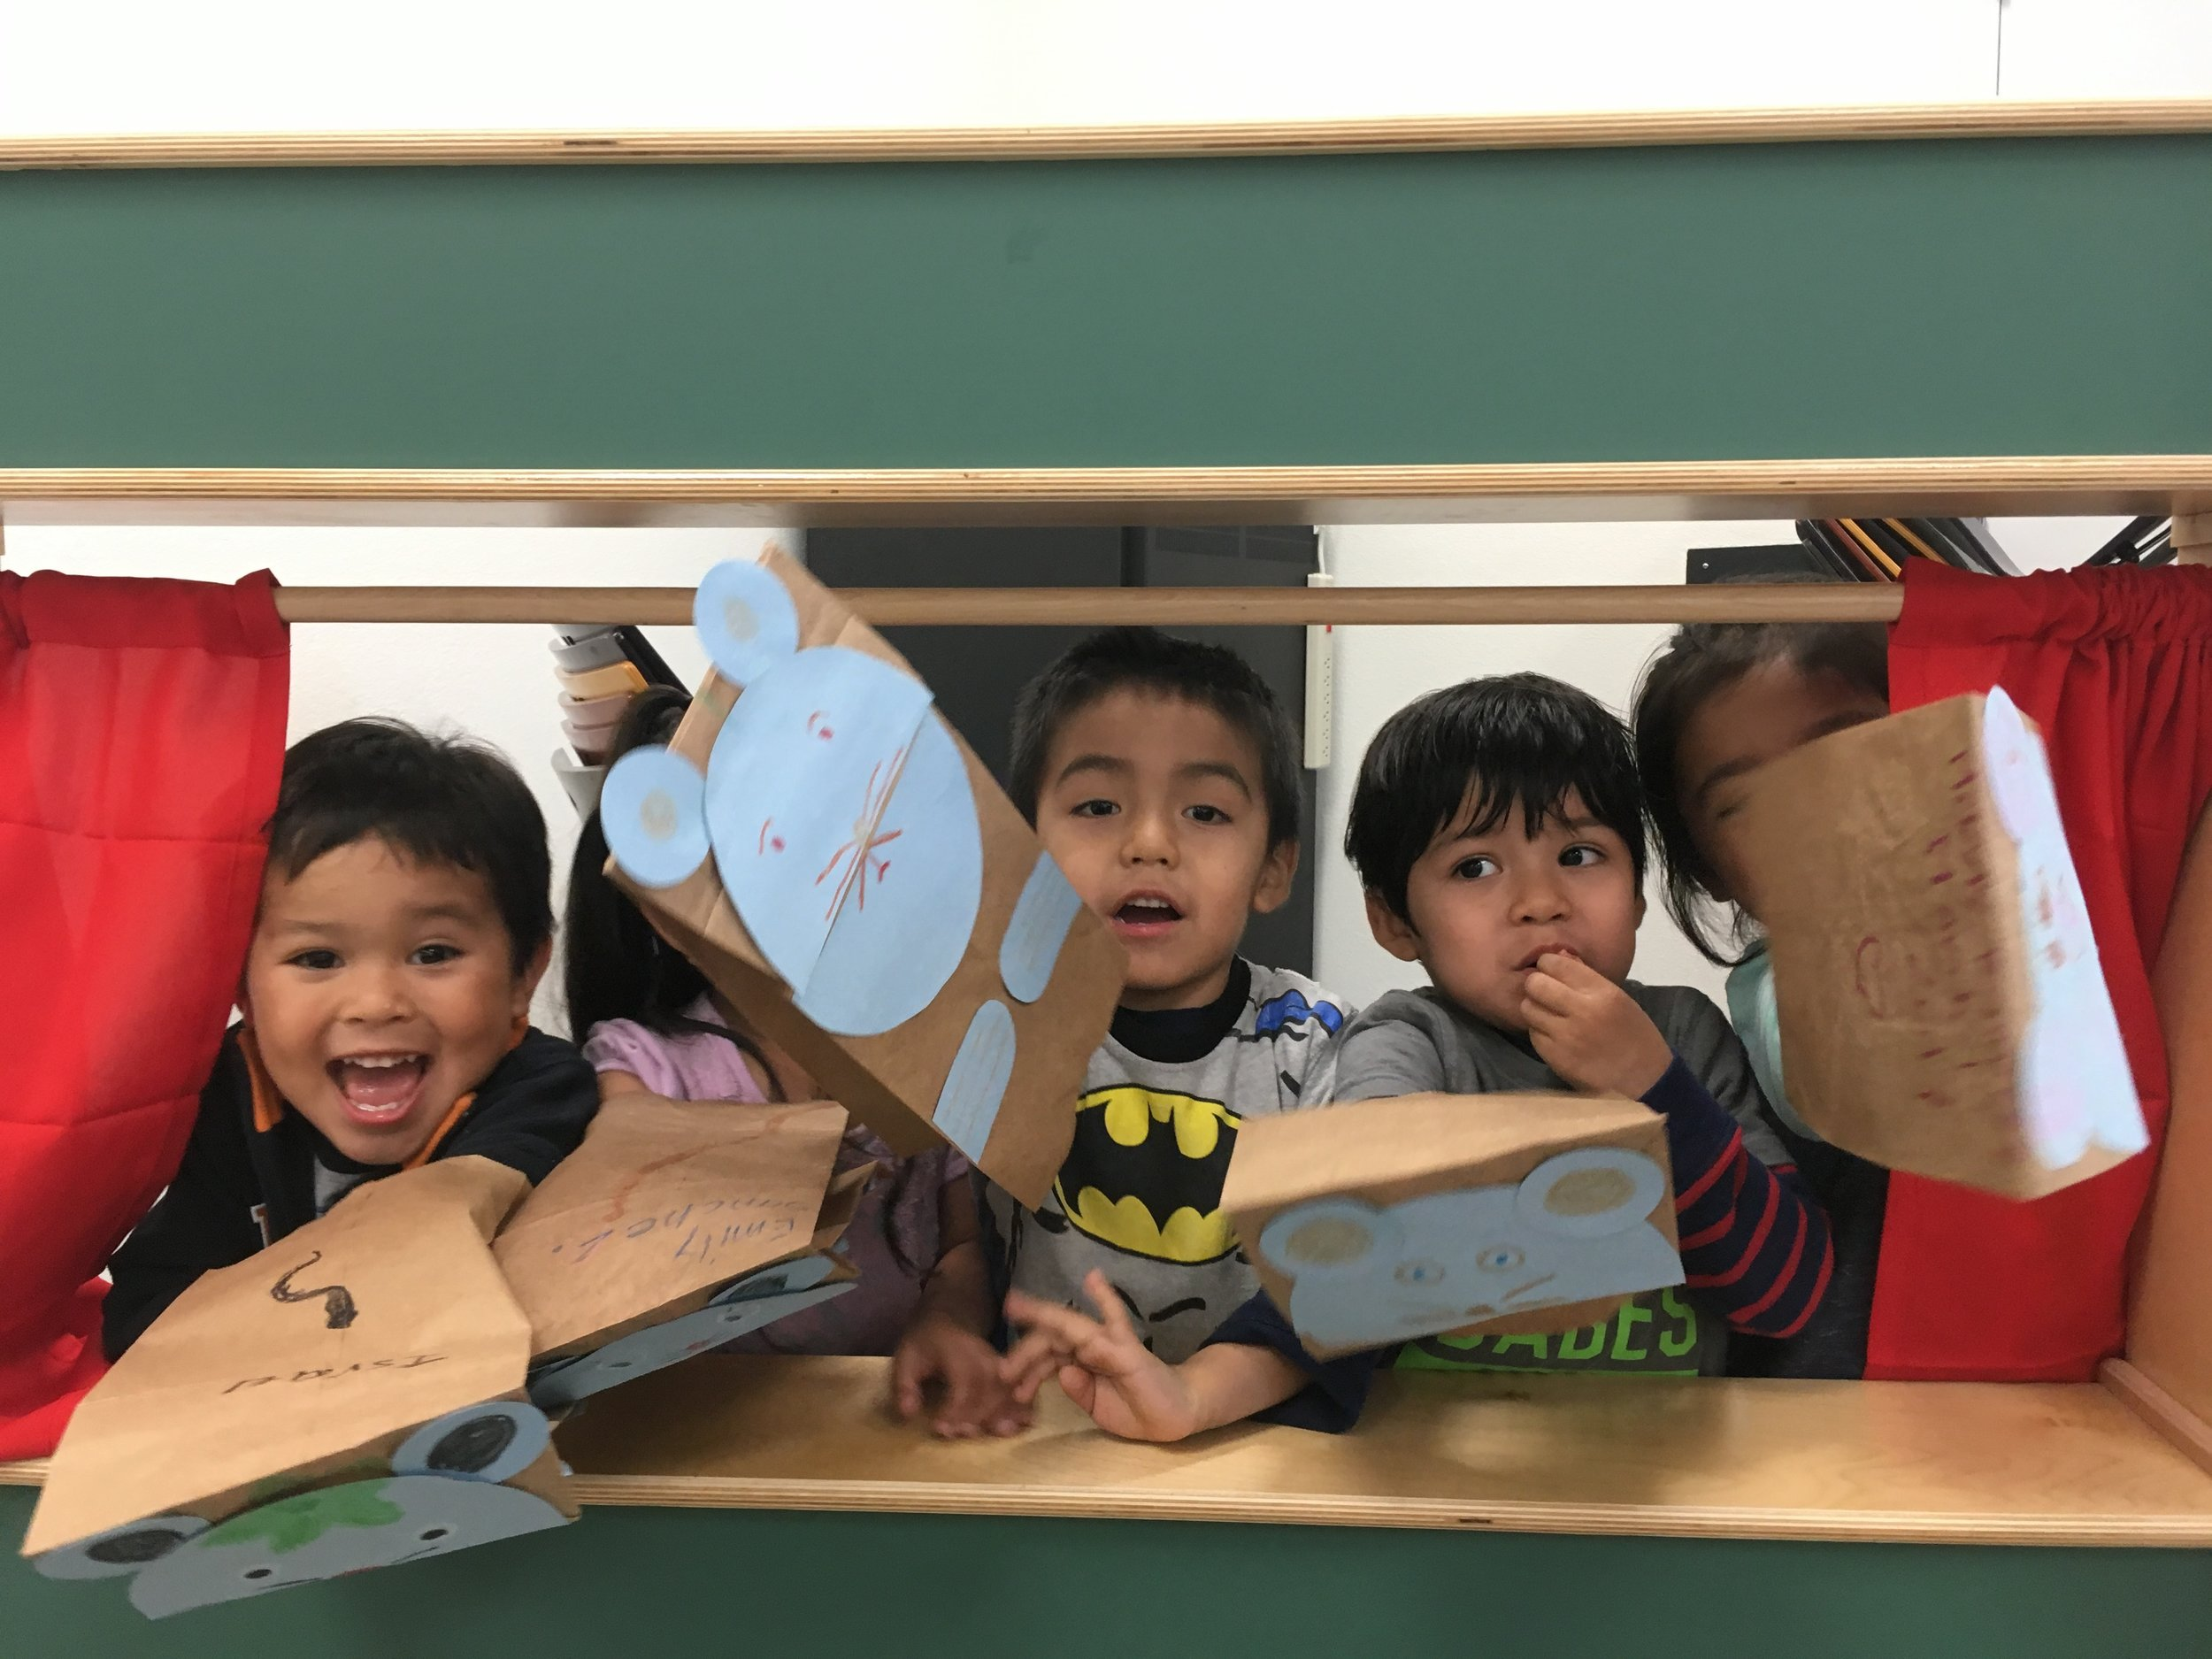 A picture of some children in our Family Literacy Program! They are posing with puppets they made during the FLP session.